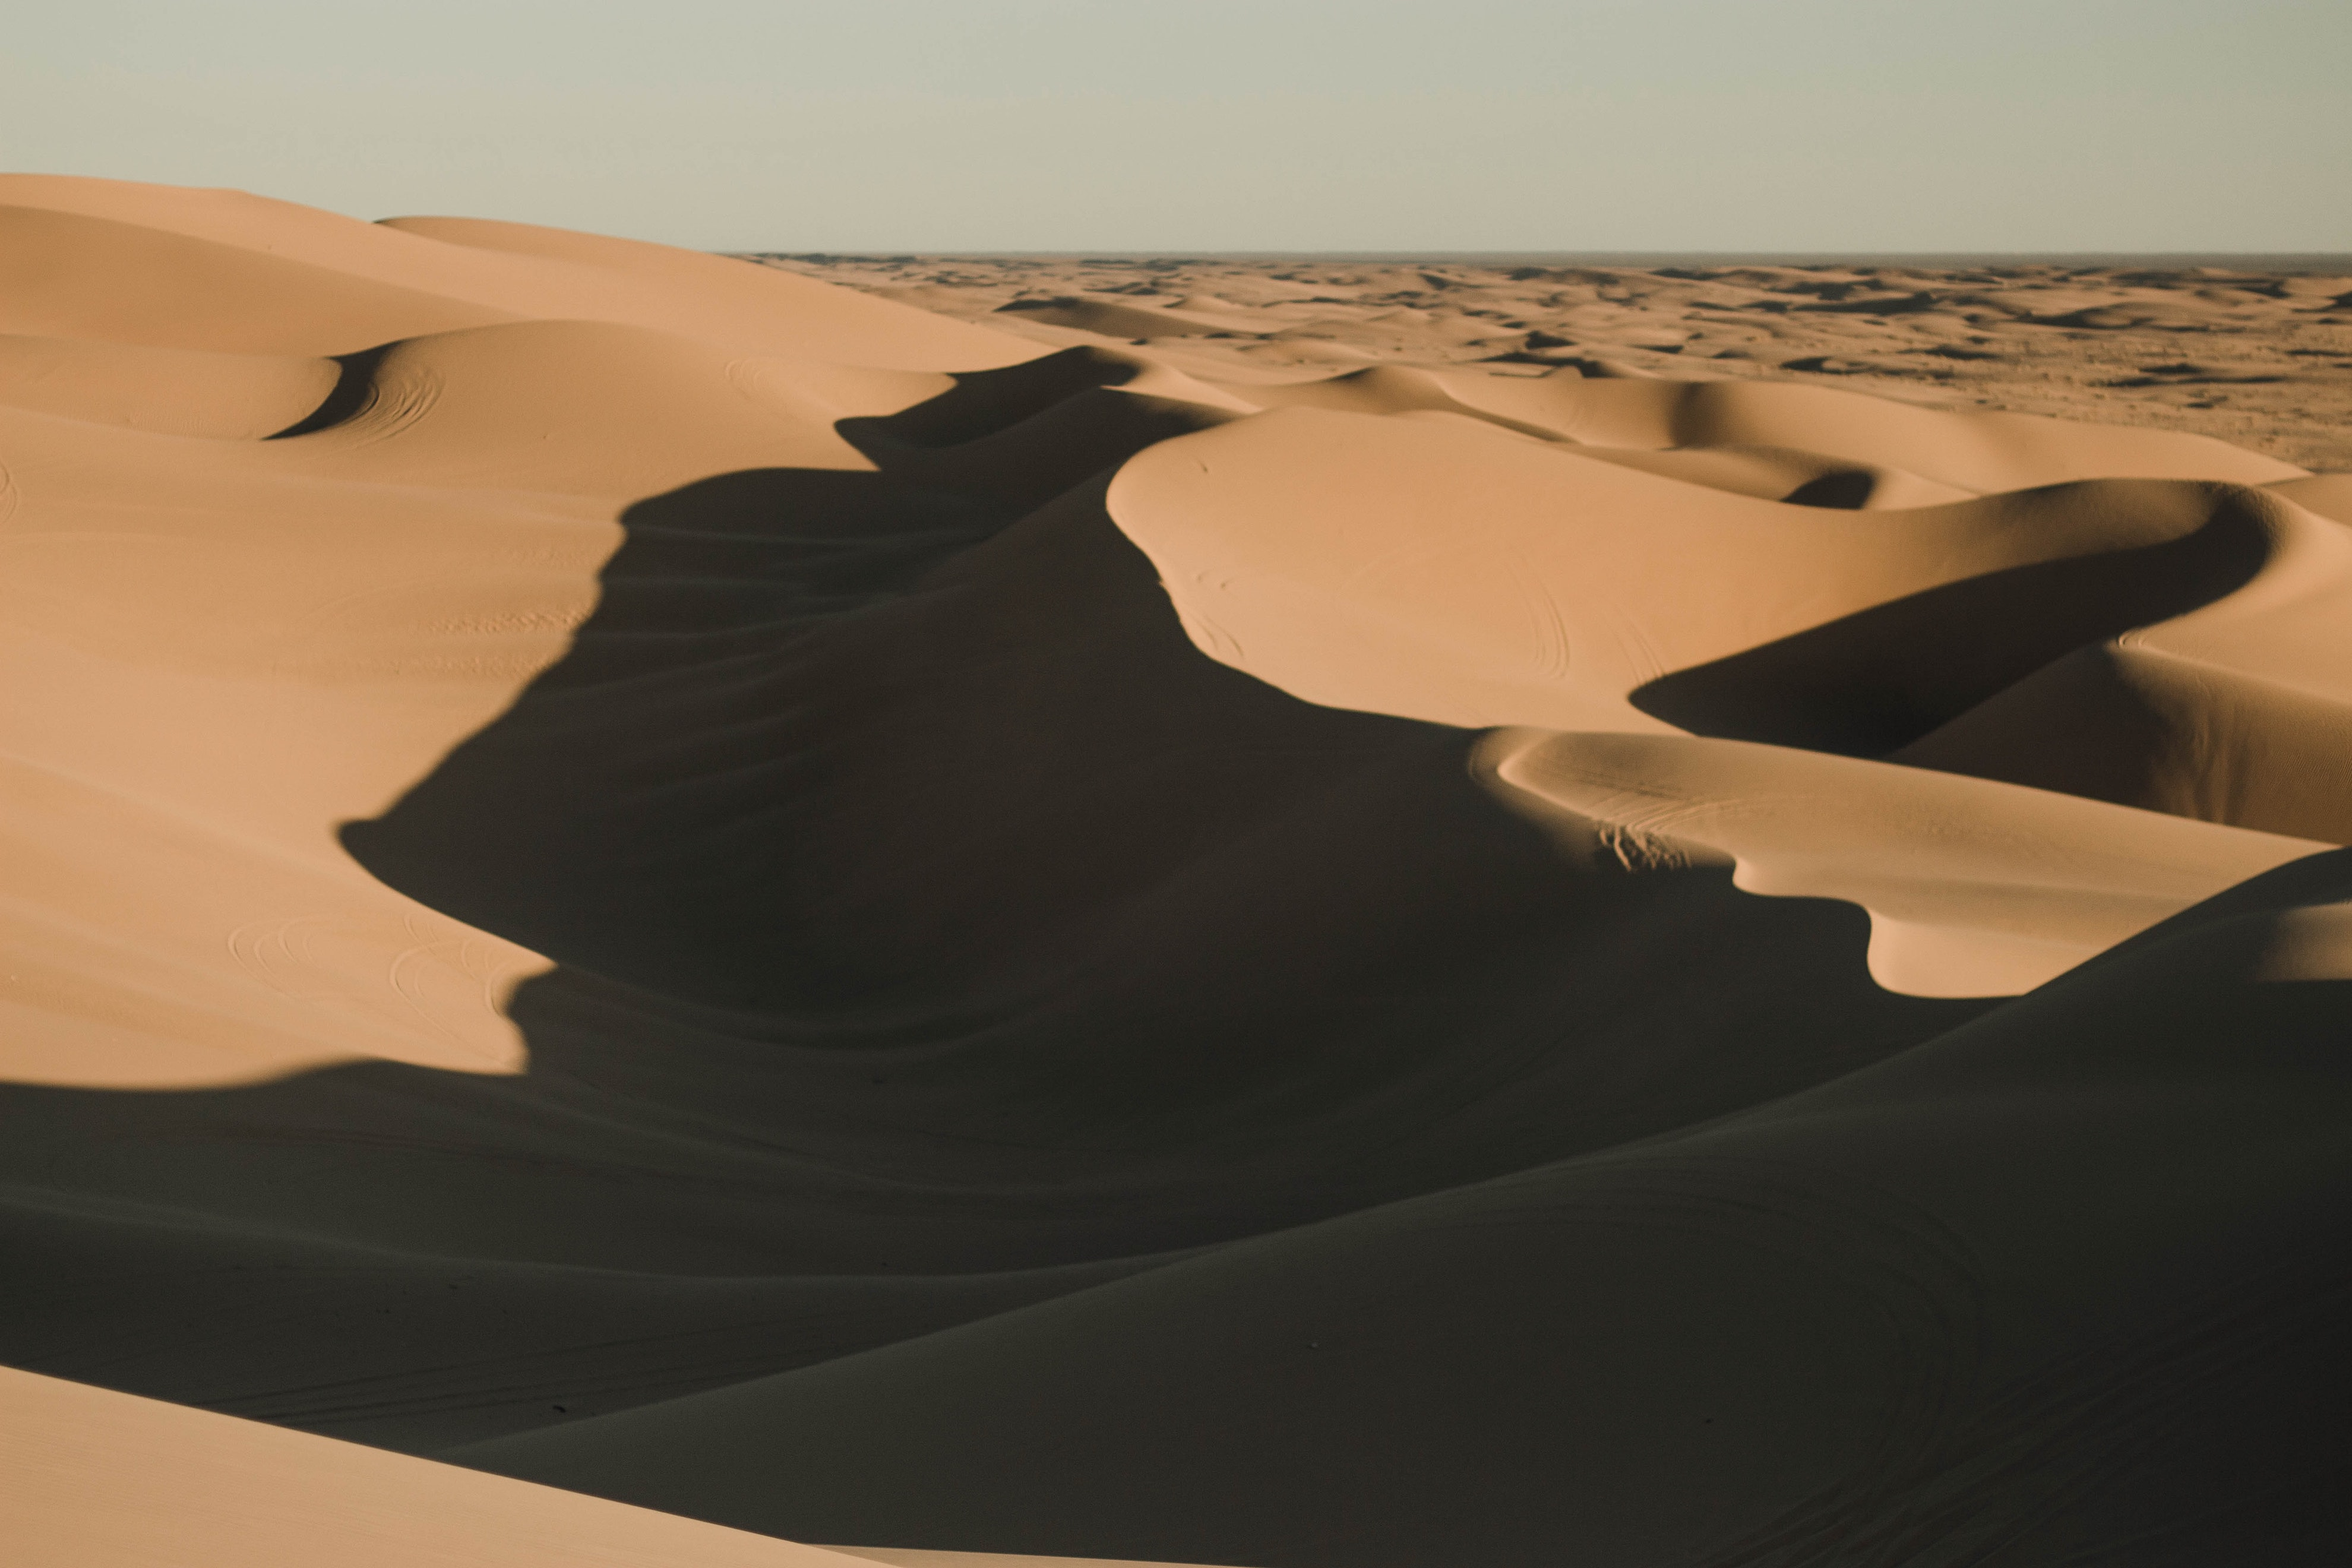 Imperial sand dunes which are a stop right along the drive between San Diego and Phoenix